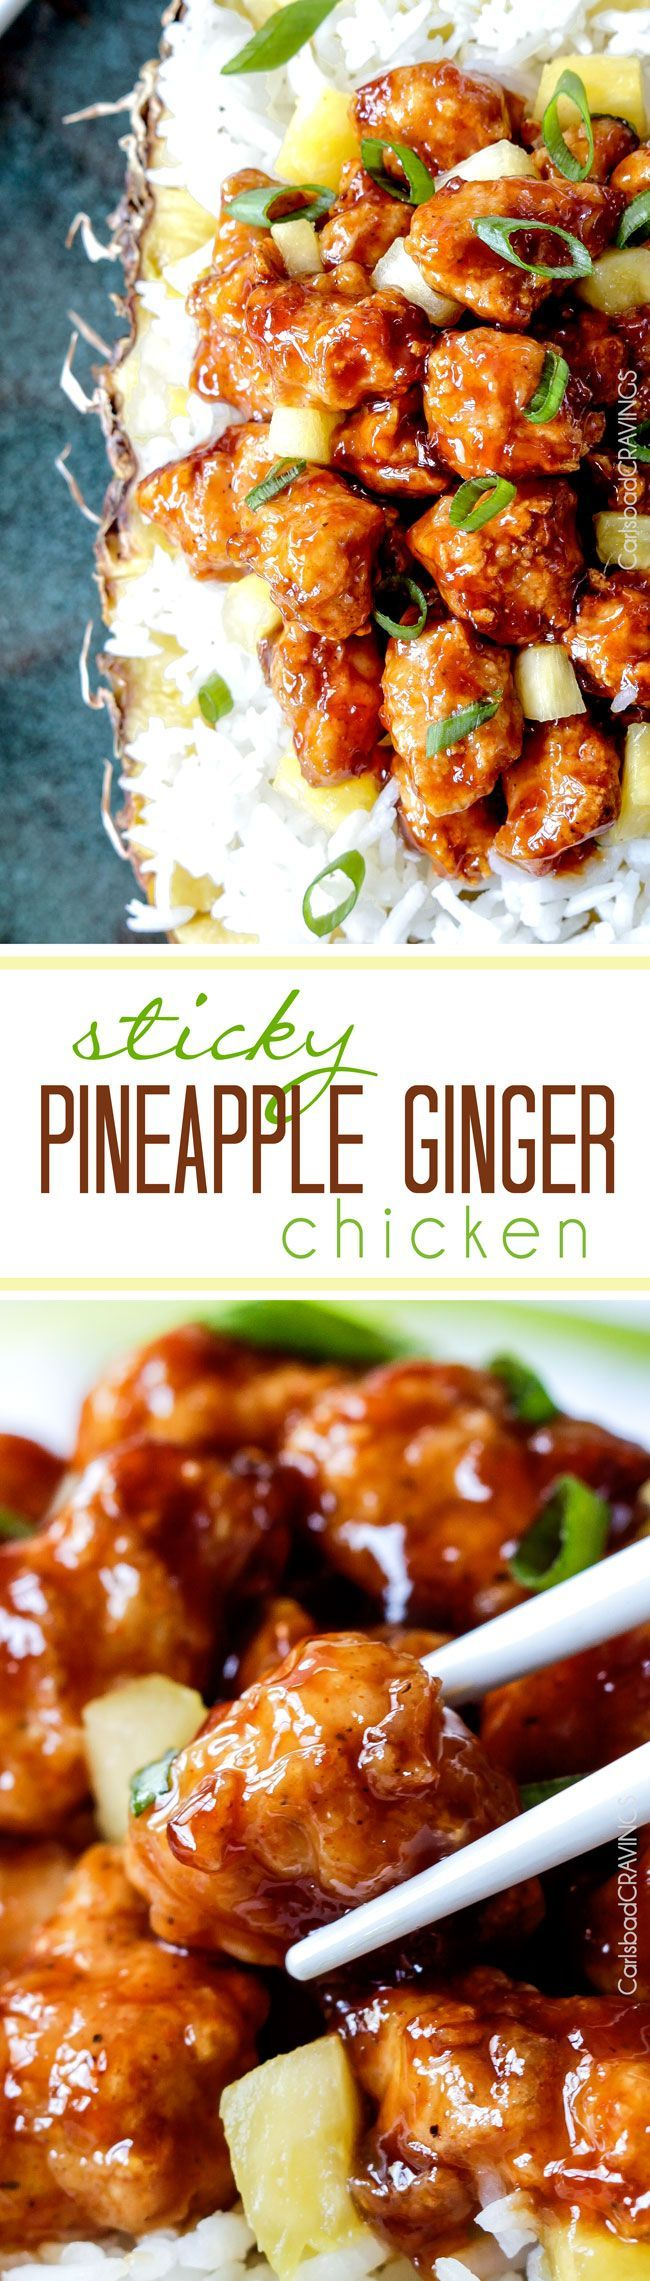 Baked or stir fried Pineapple Ginger Chicken smothered in the most crazy delicious sweet pineapple sauce with a ginger Sriracha kick